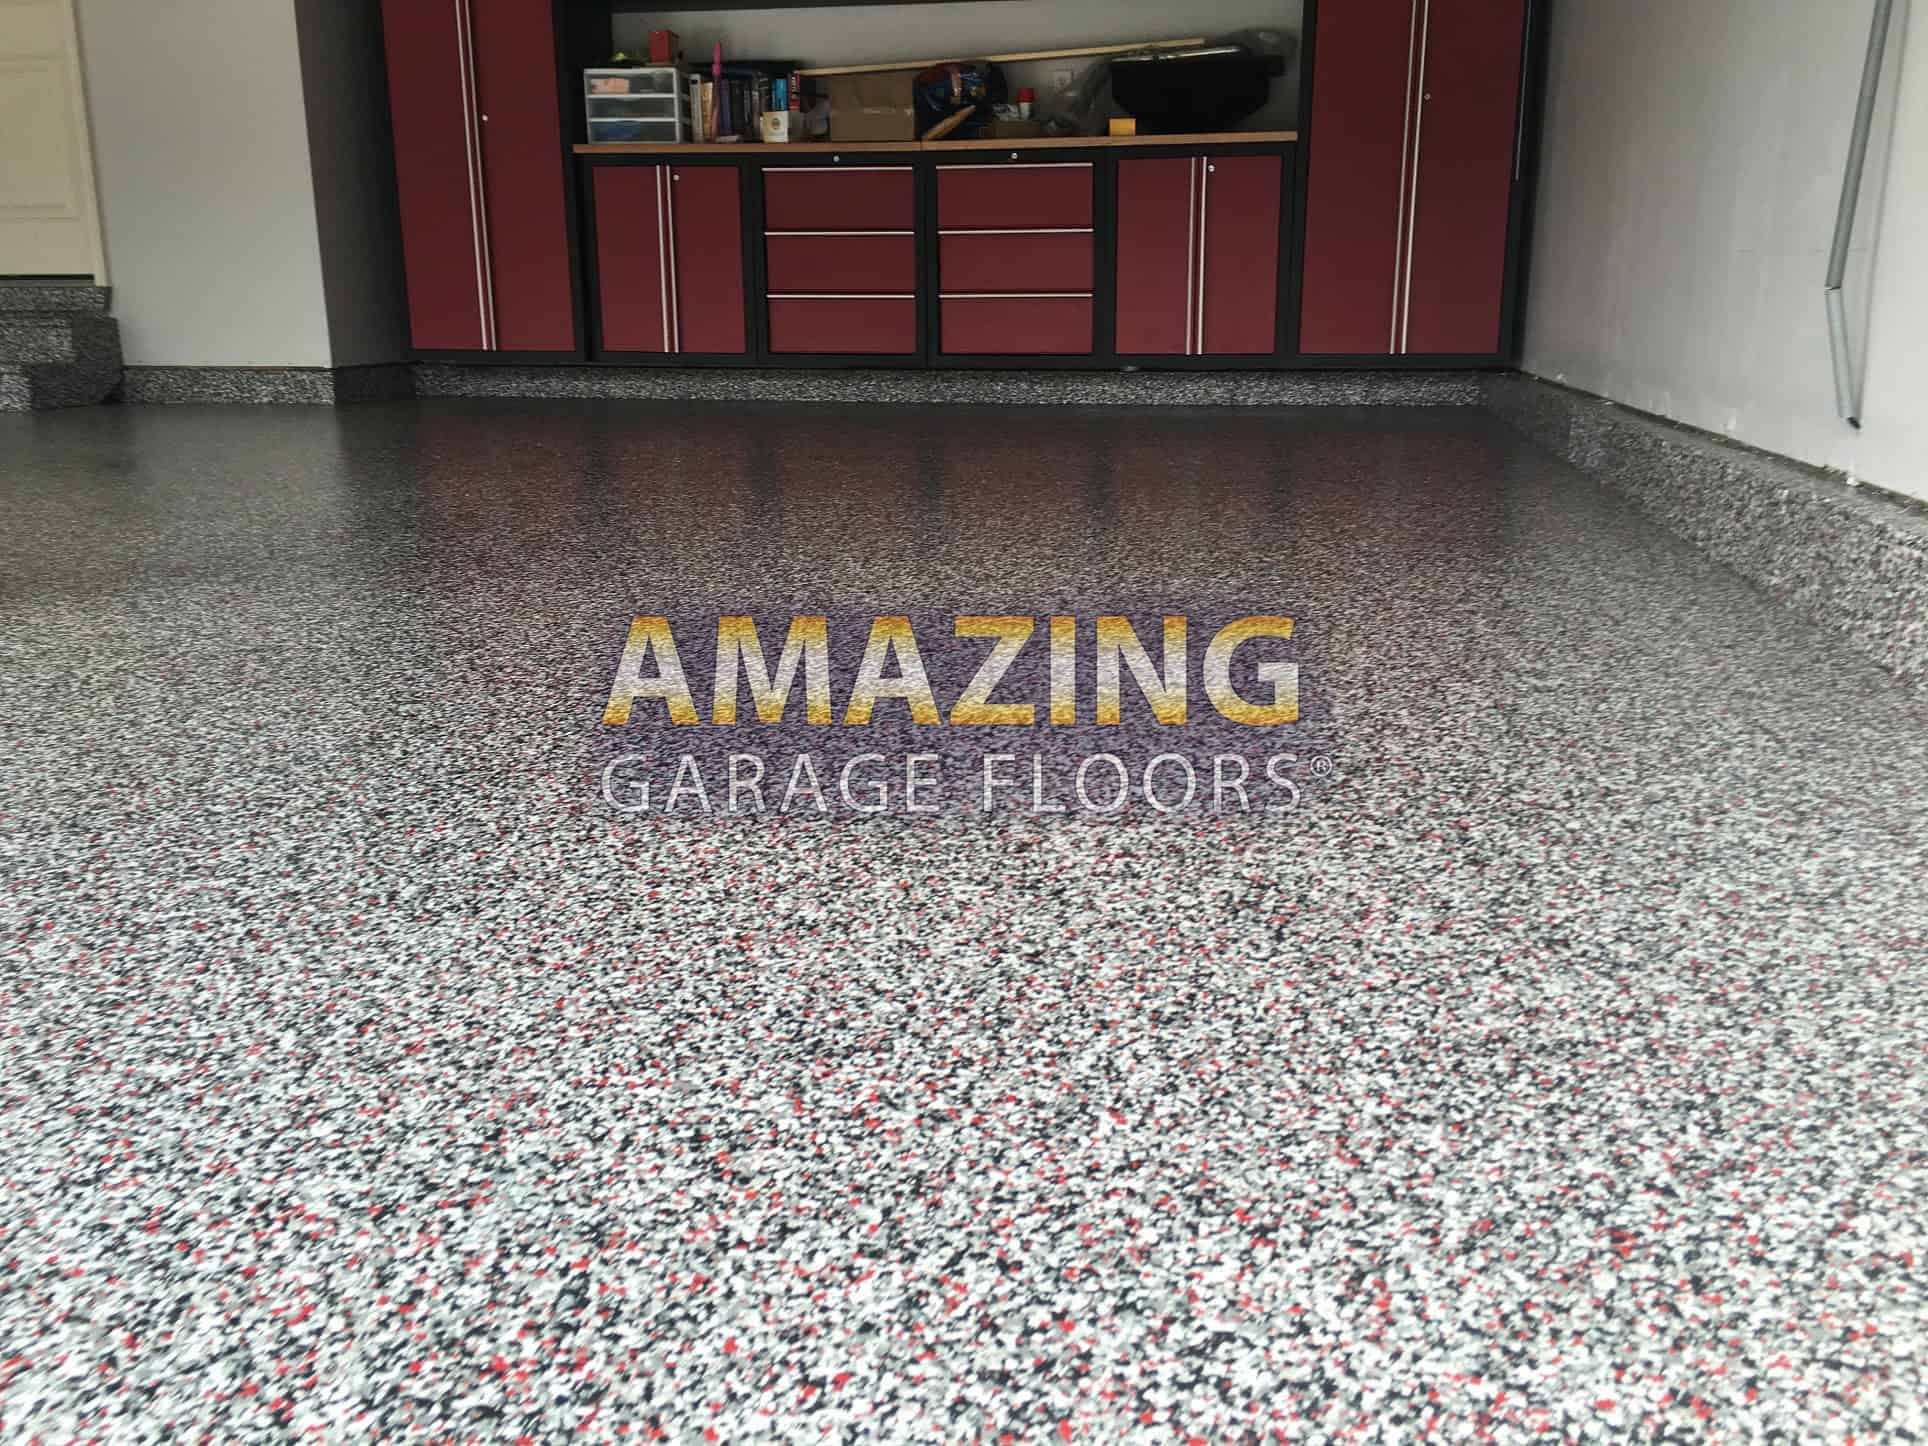 Garage Floor Epoxy Options Garage Floor Options Epoxy Flooring Vs Tiles Amazing Garage Floors